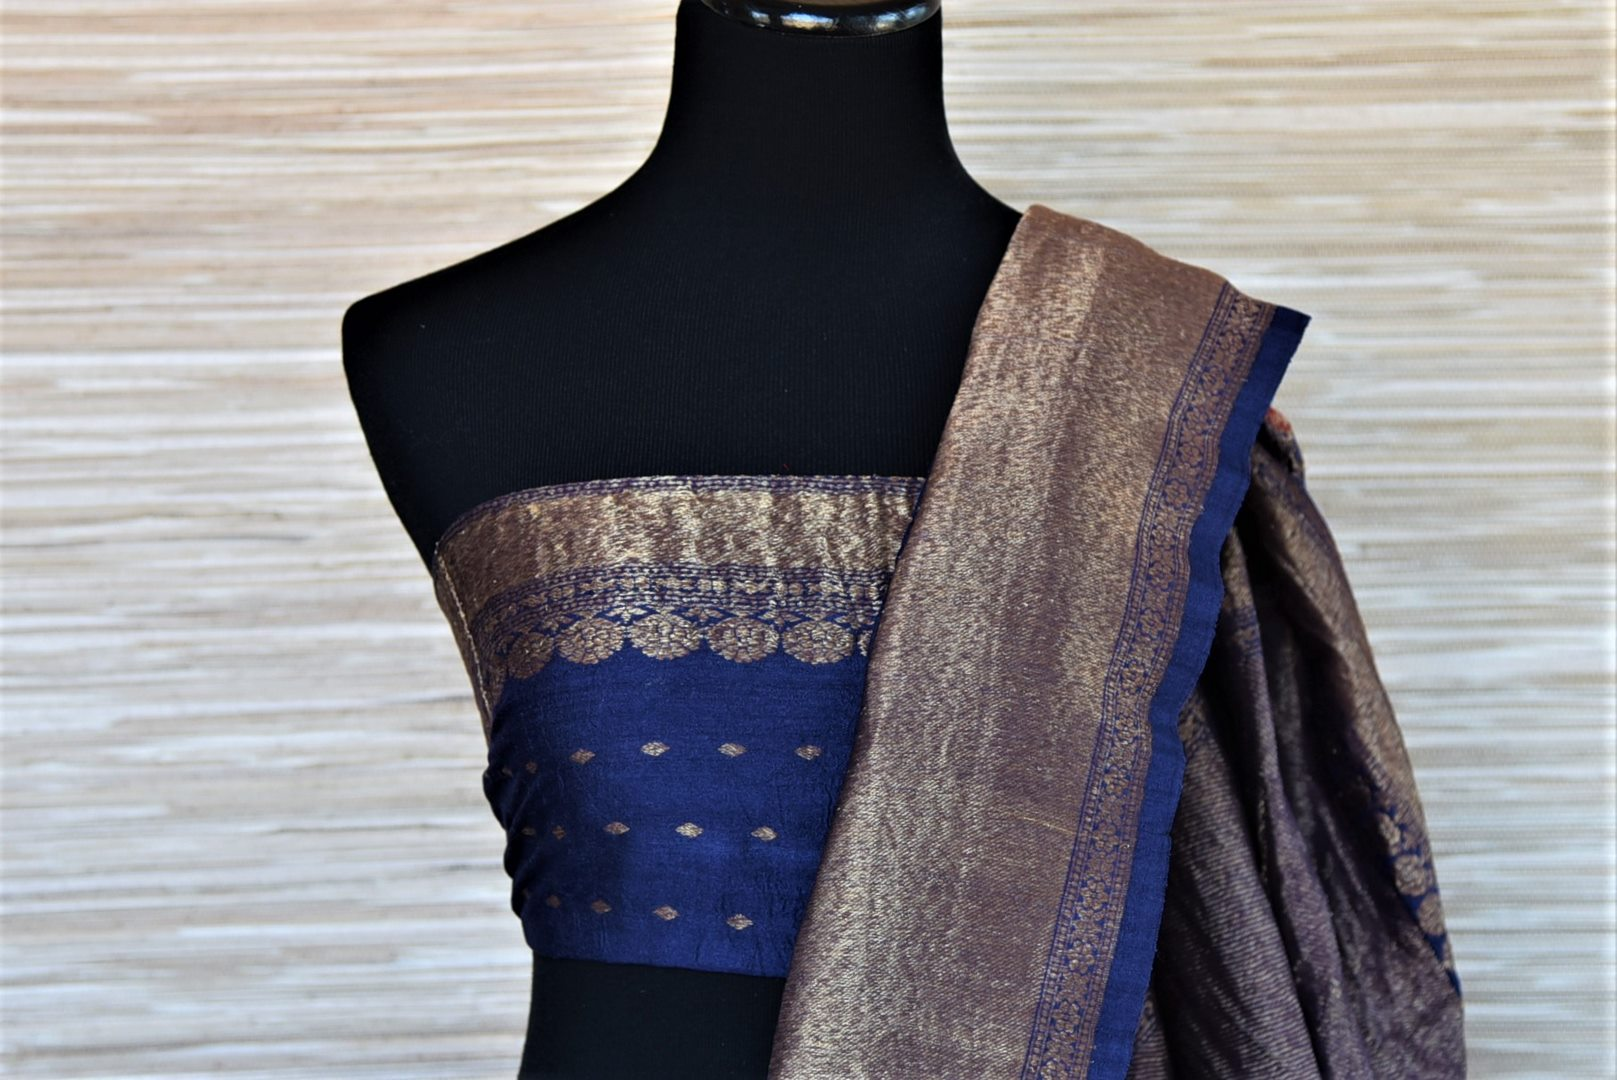 Buy red tussar Banarsi saree online in USA with blue antique zari border. Wear designer sarees, Banarasi sarees, handwoven tussar sarees on special occasions from Pure Elegance Indian clothing store in USA. -blouse pallu